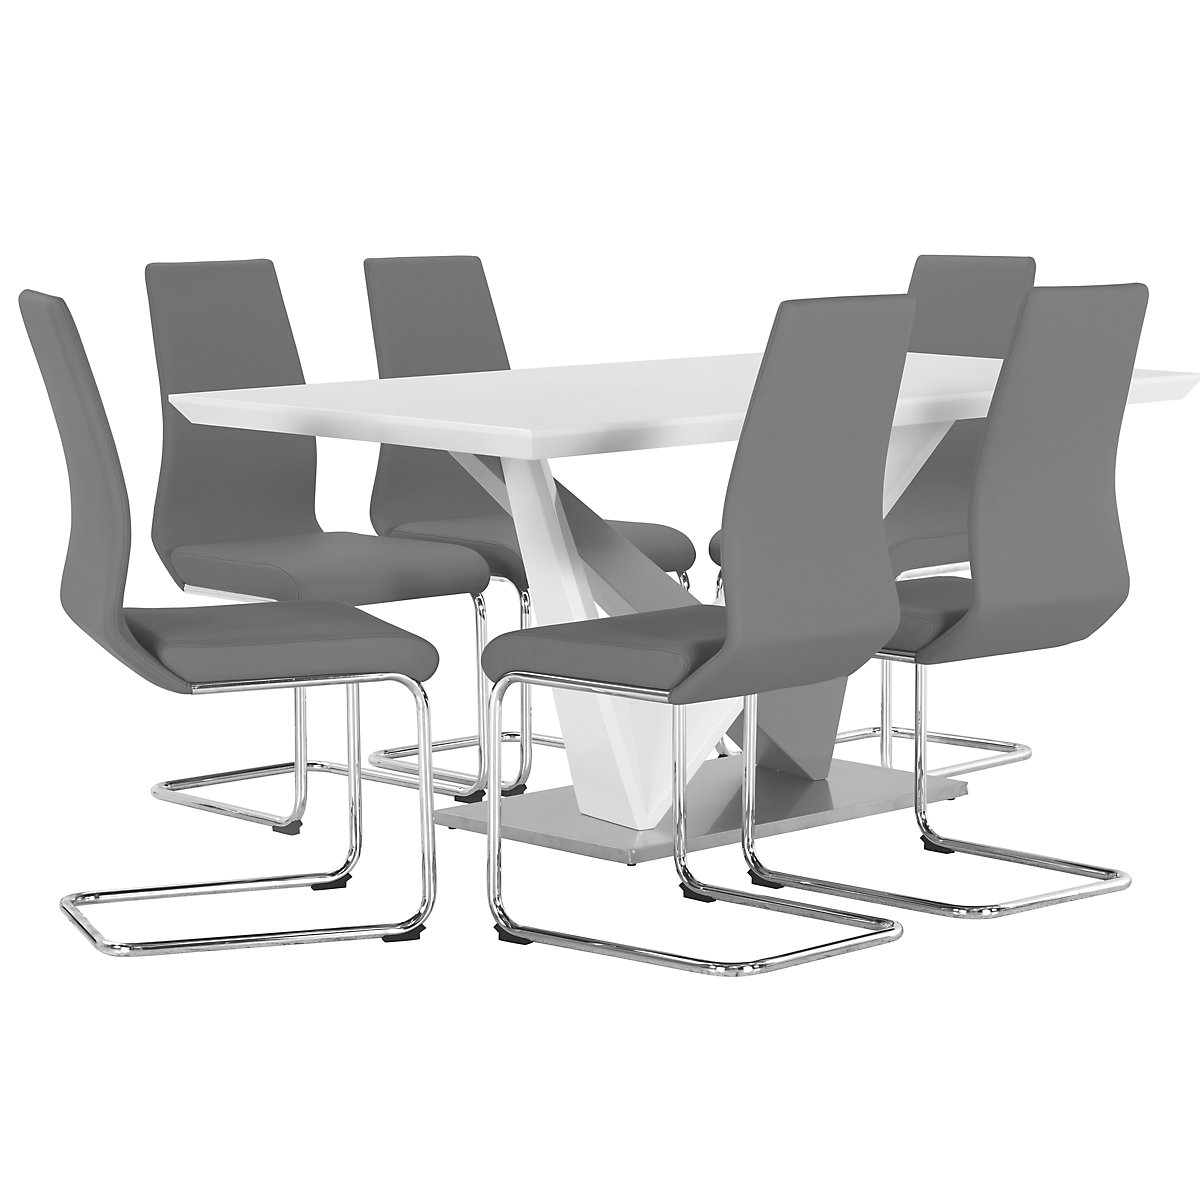 Lennox Gray Rectangular Table & 4 Upholstered Chairs